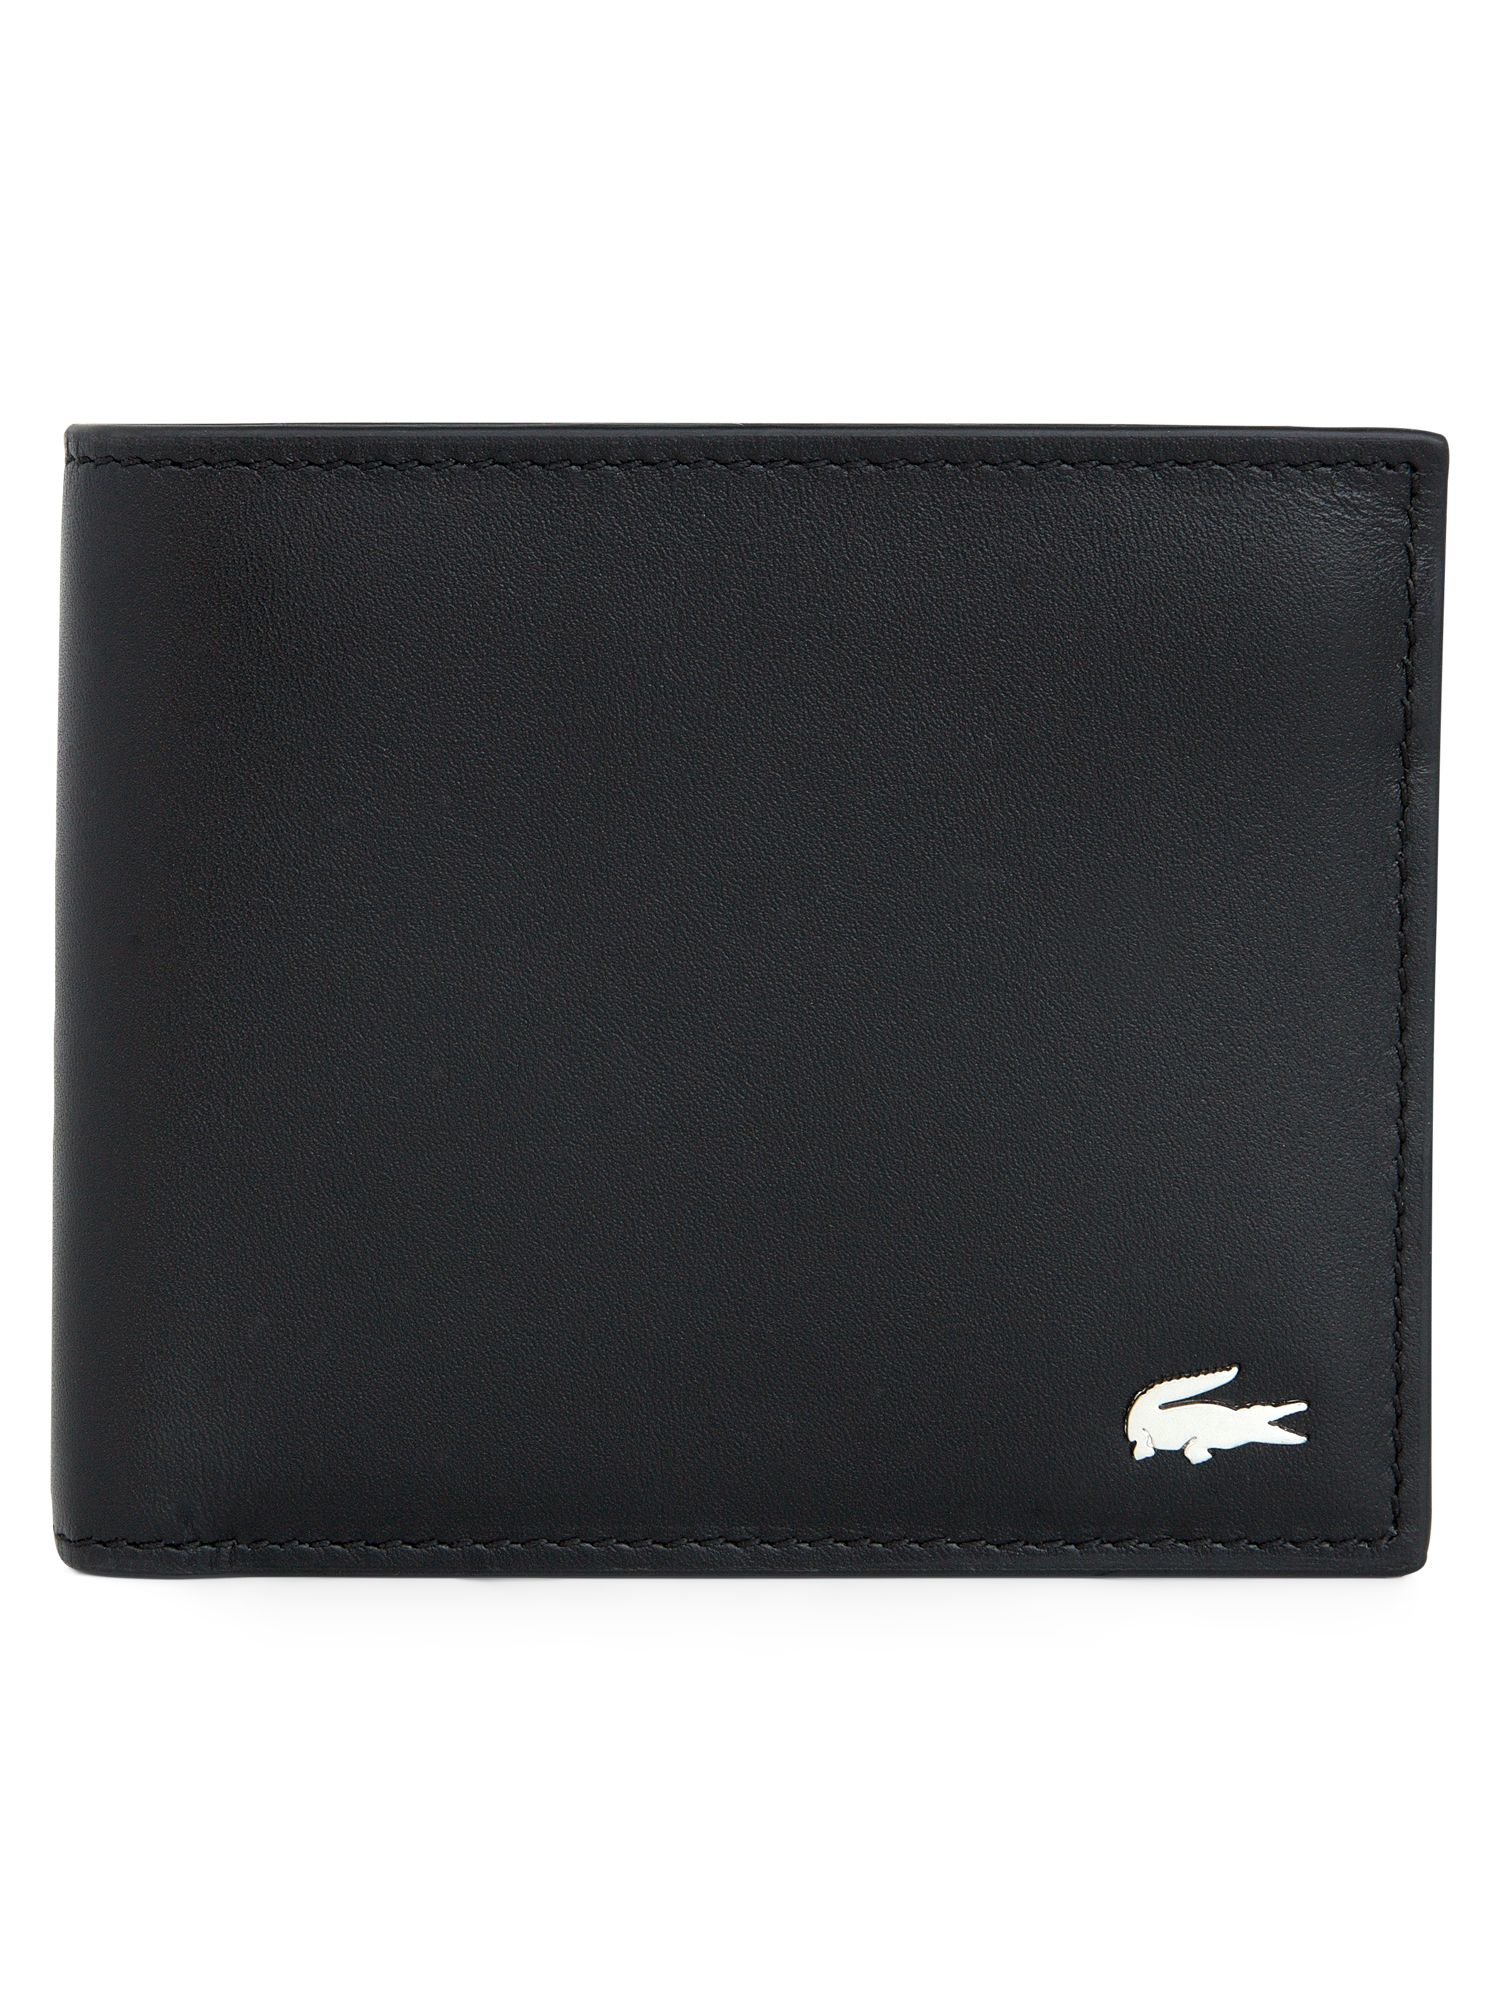 Leather wallet lacoste